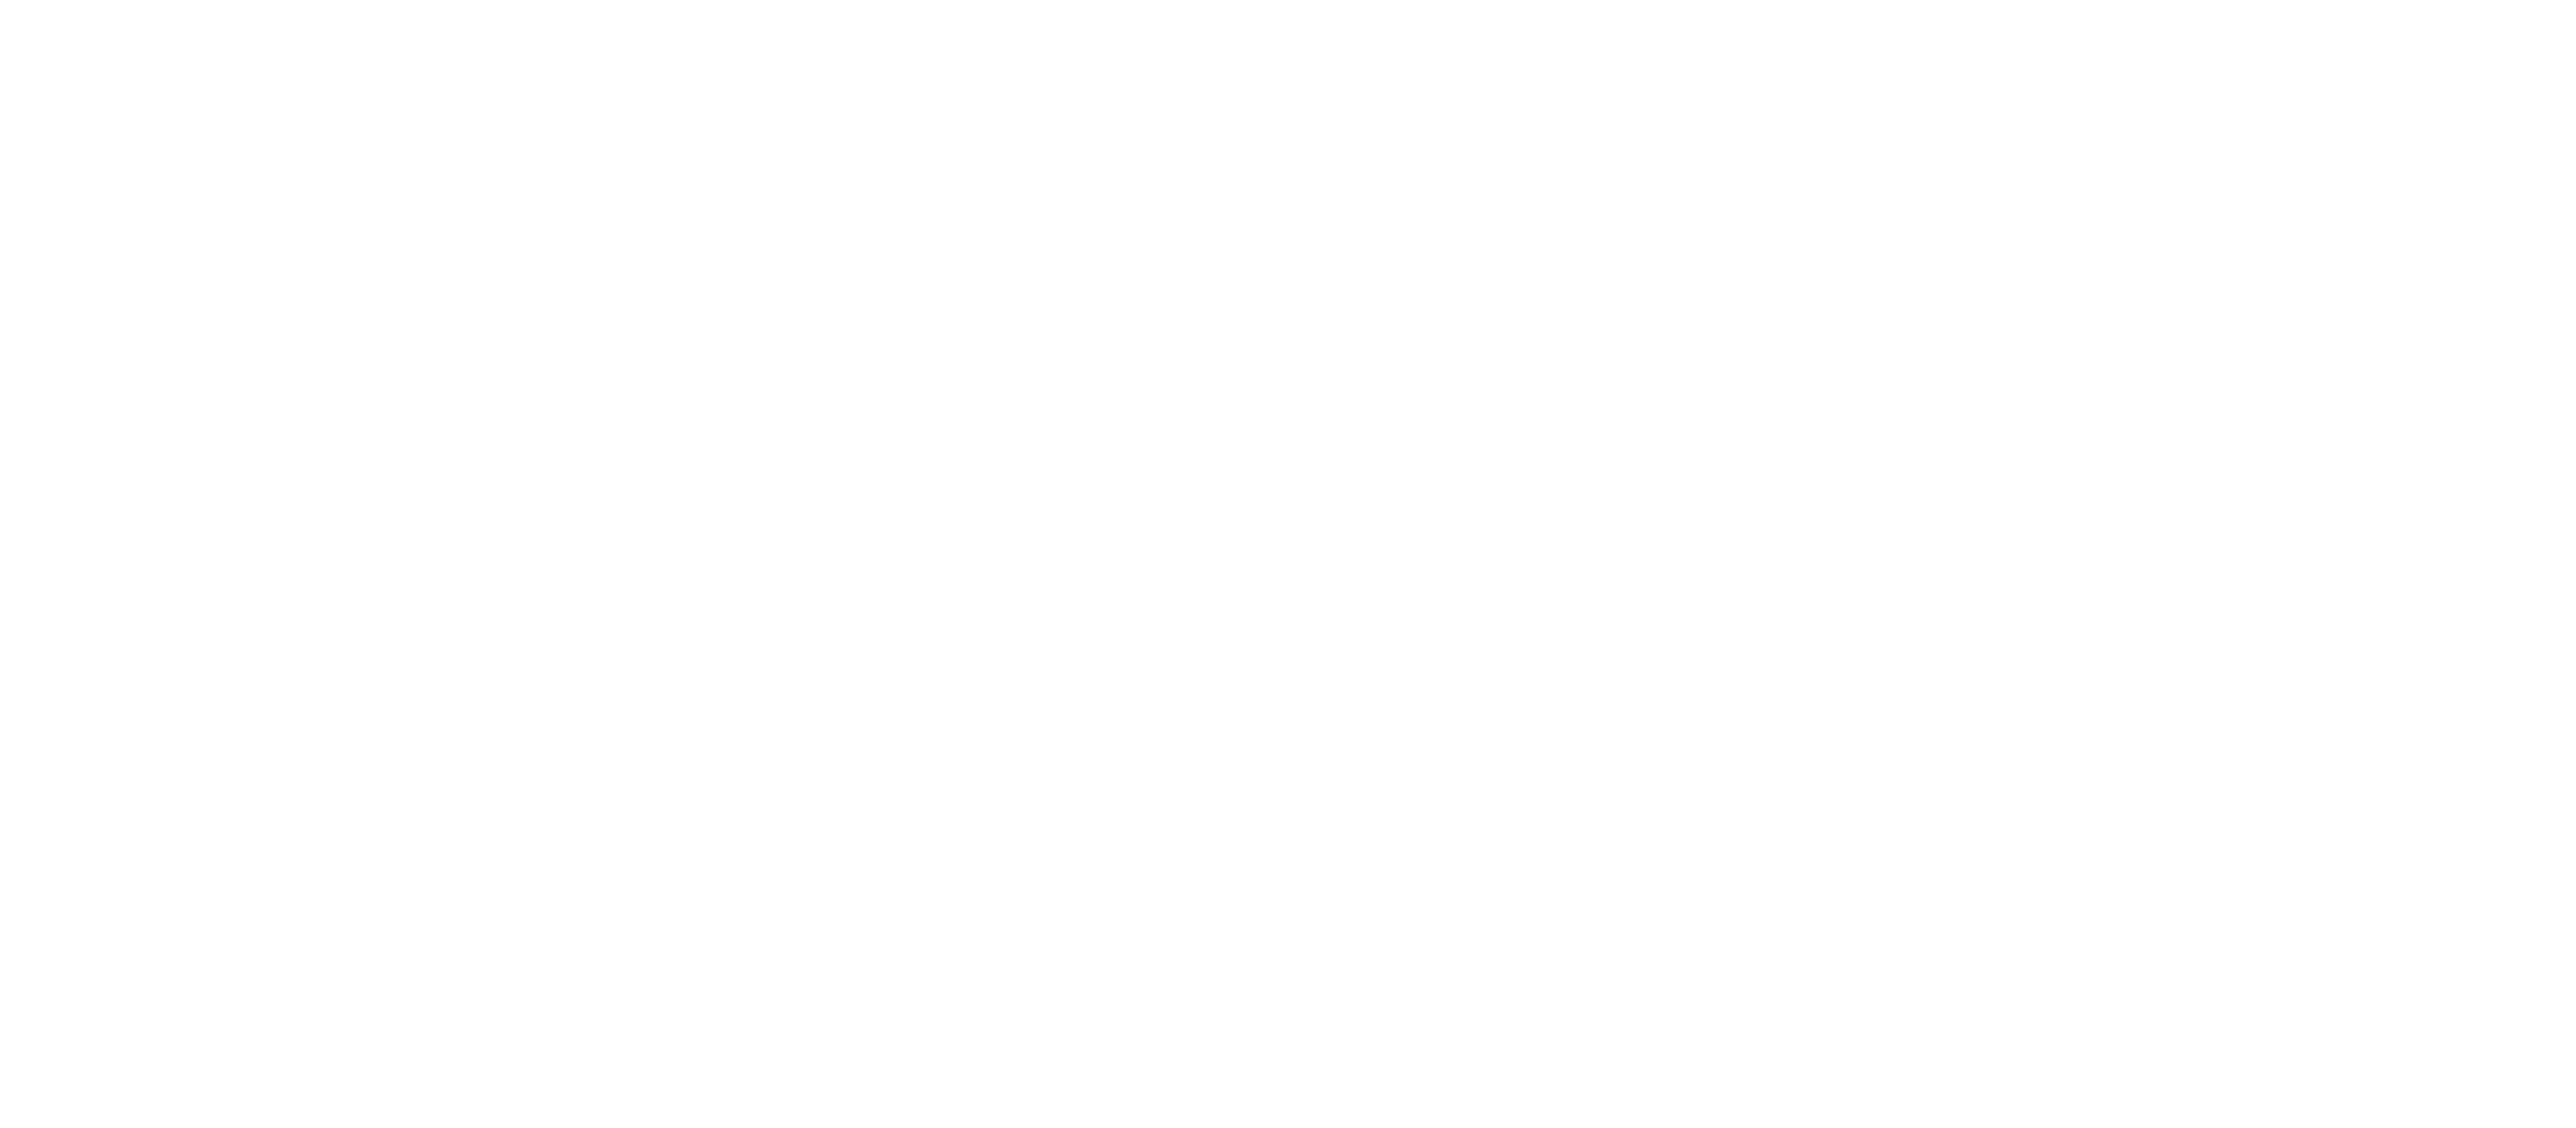 Sharing the good vibe daily from 1-10